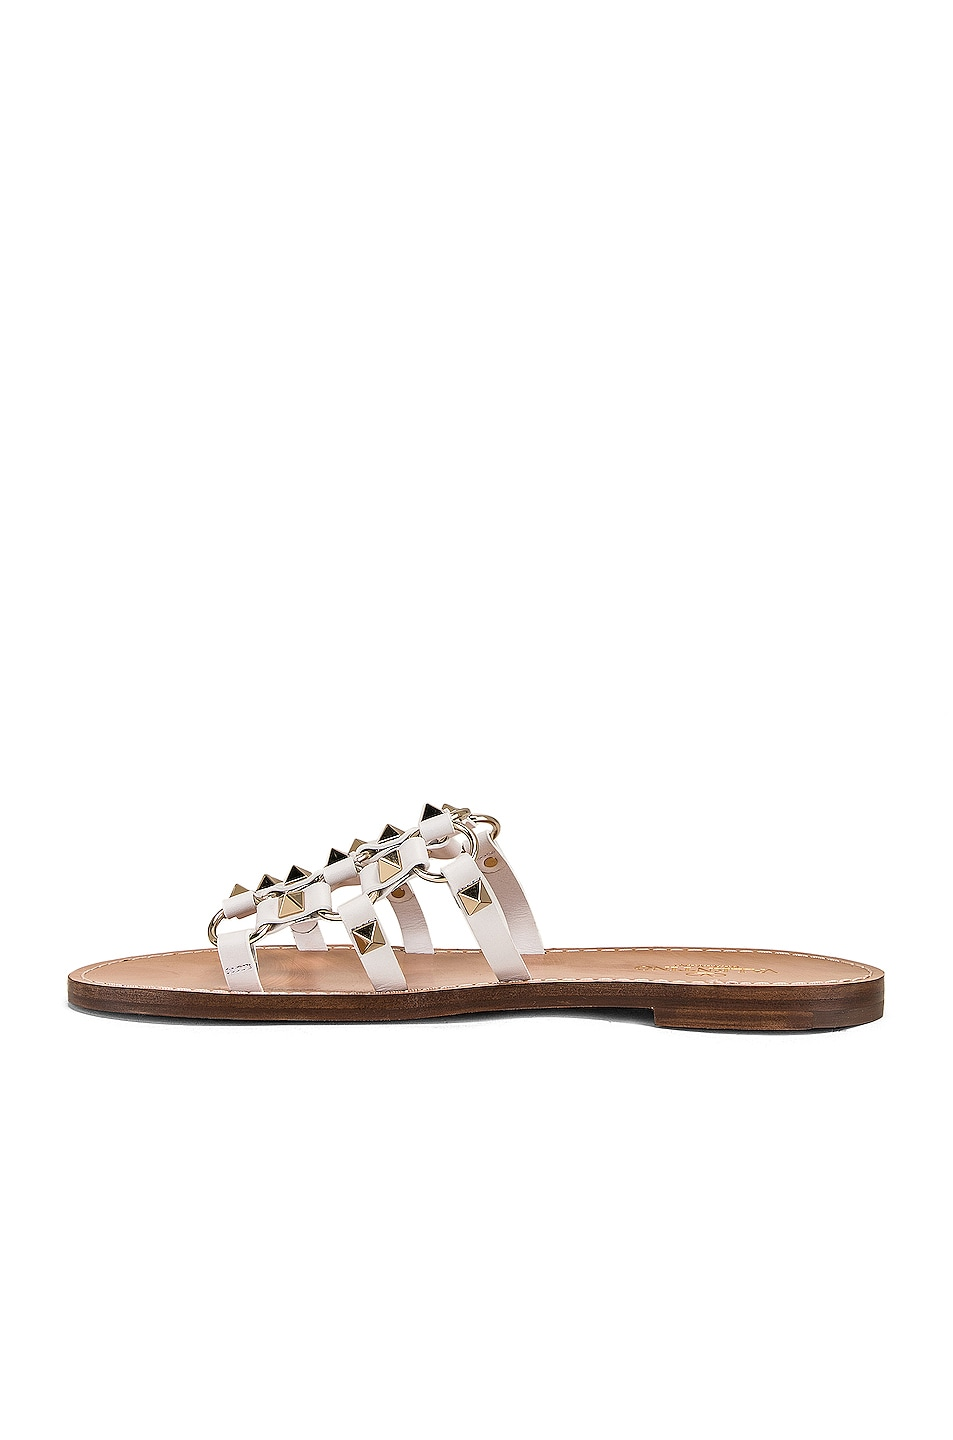 Image 5 of Valentino Cagestuds Sandal in Bianco Ottico